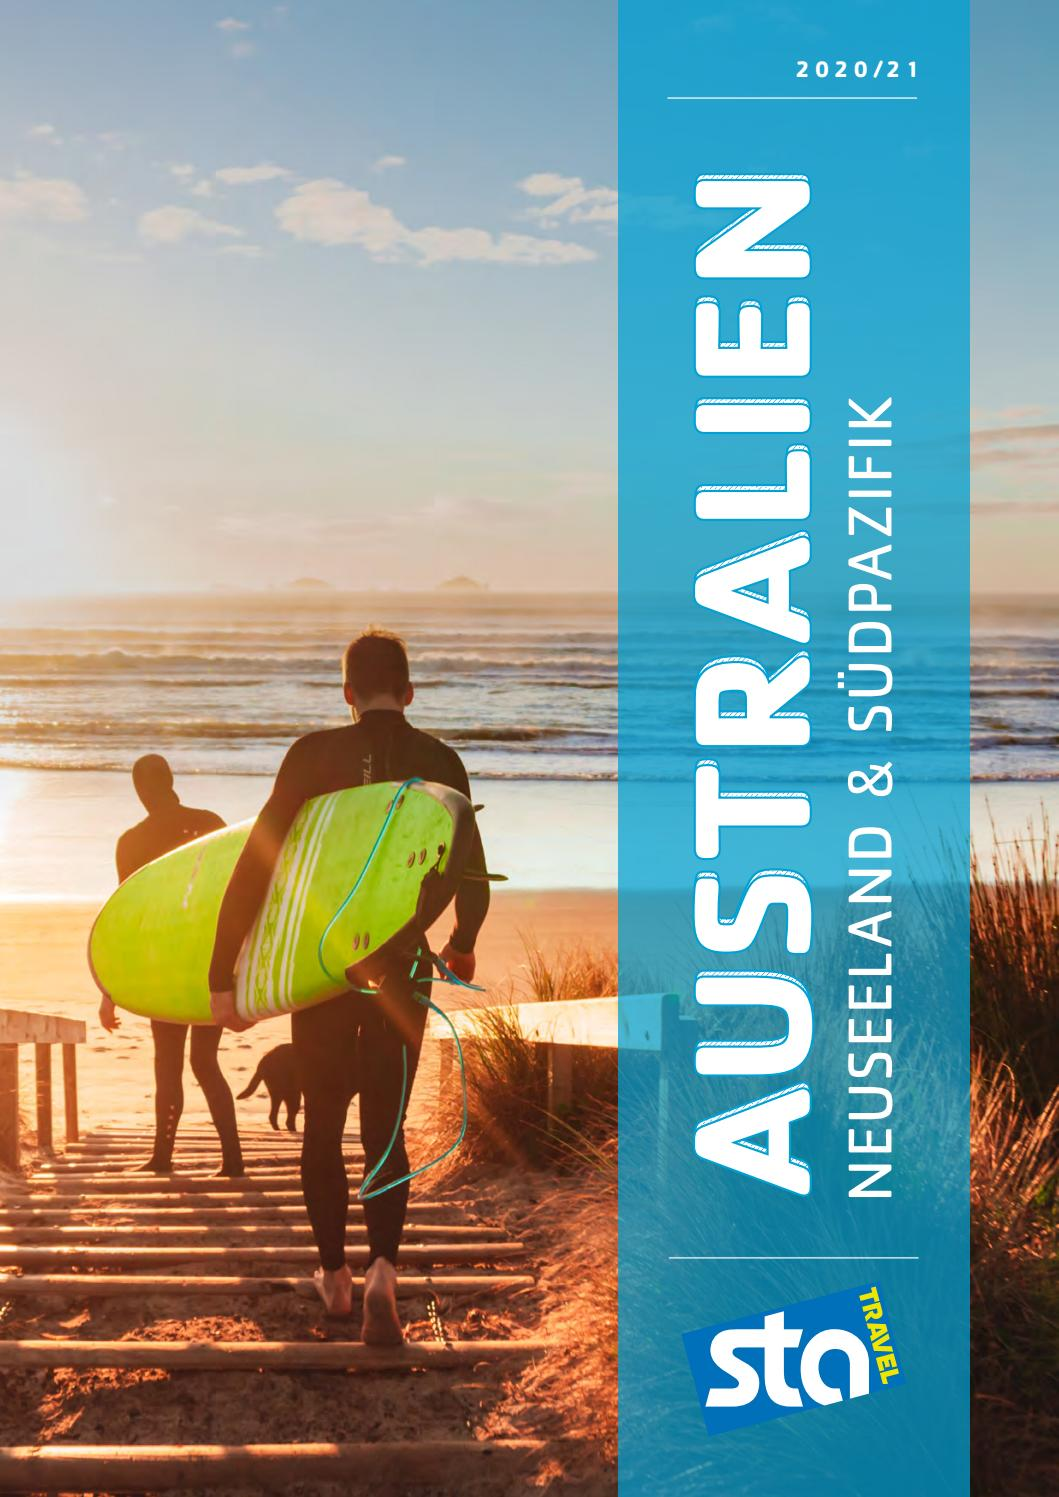 Australien Neuseeland Suedpazifik 2020 21 Ceu By Sta Travel Ltd Issuu